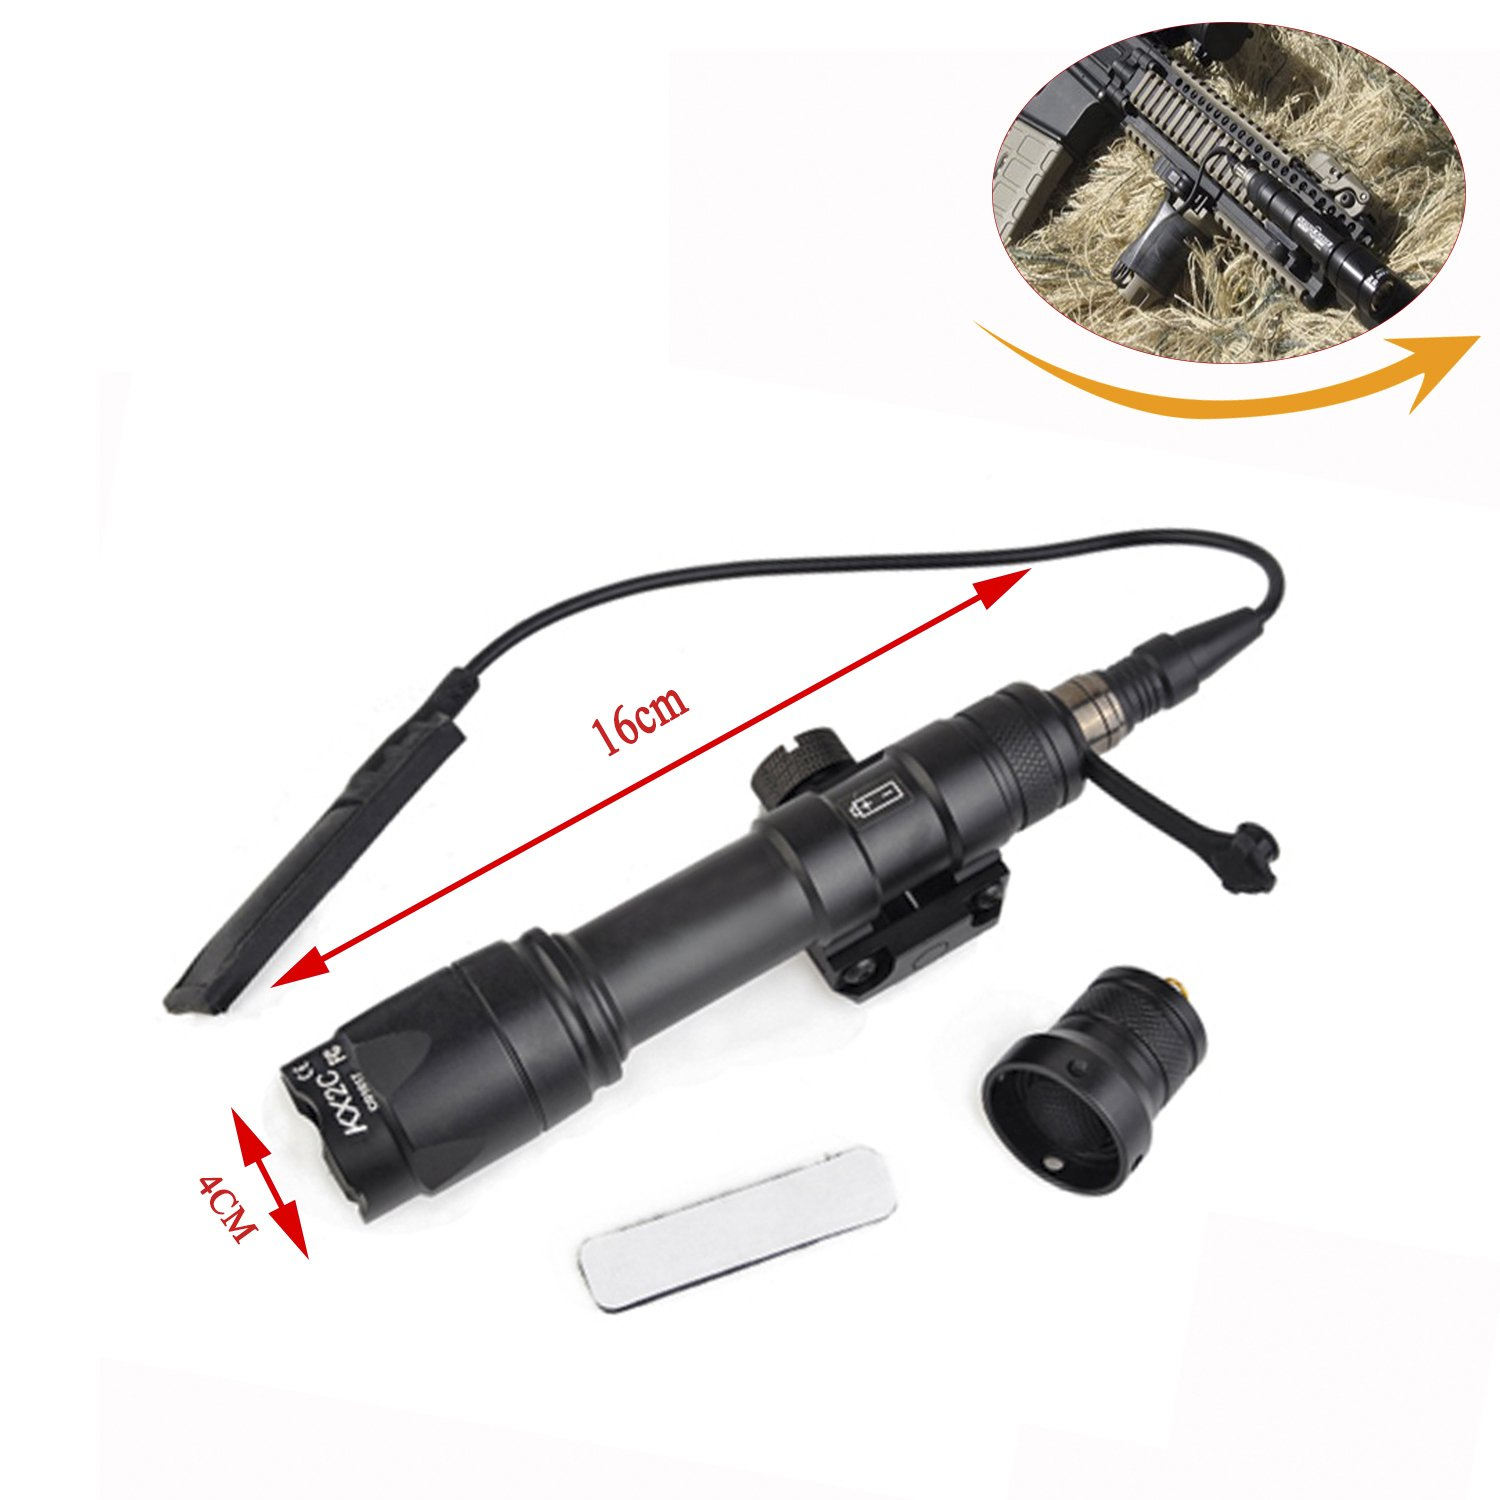 Element Airsoft Aluminum WeaponLights LED Full Version With Remote Pressure For 20mm Rail (EX072) (Black)